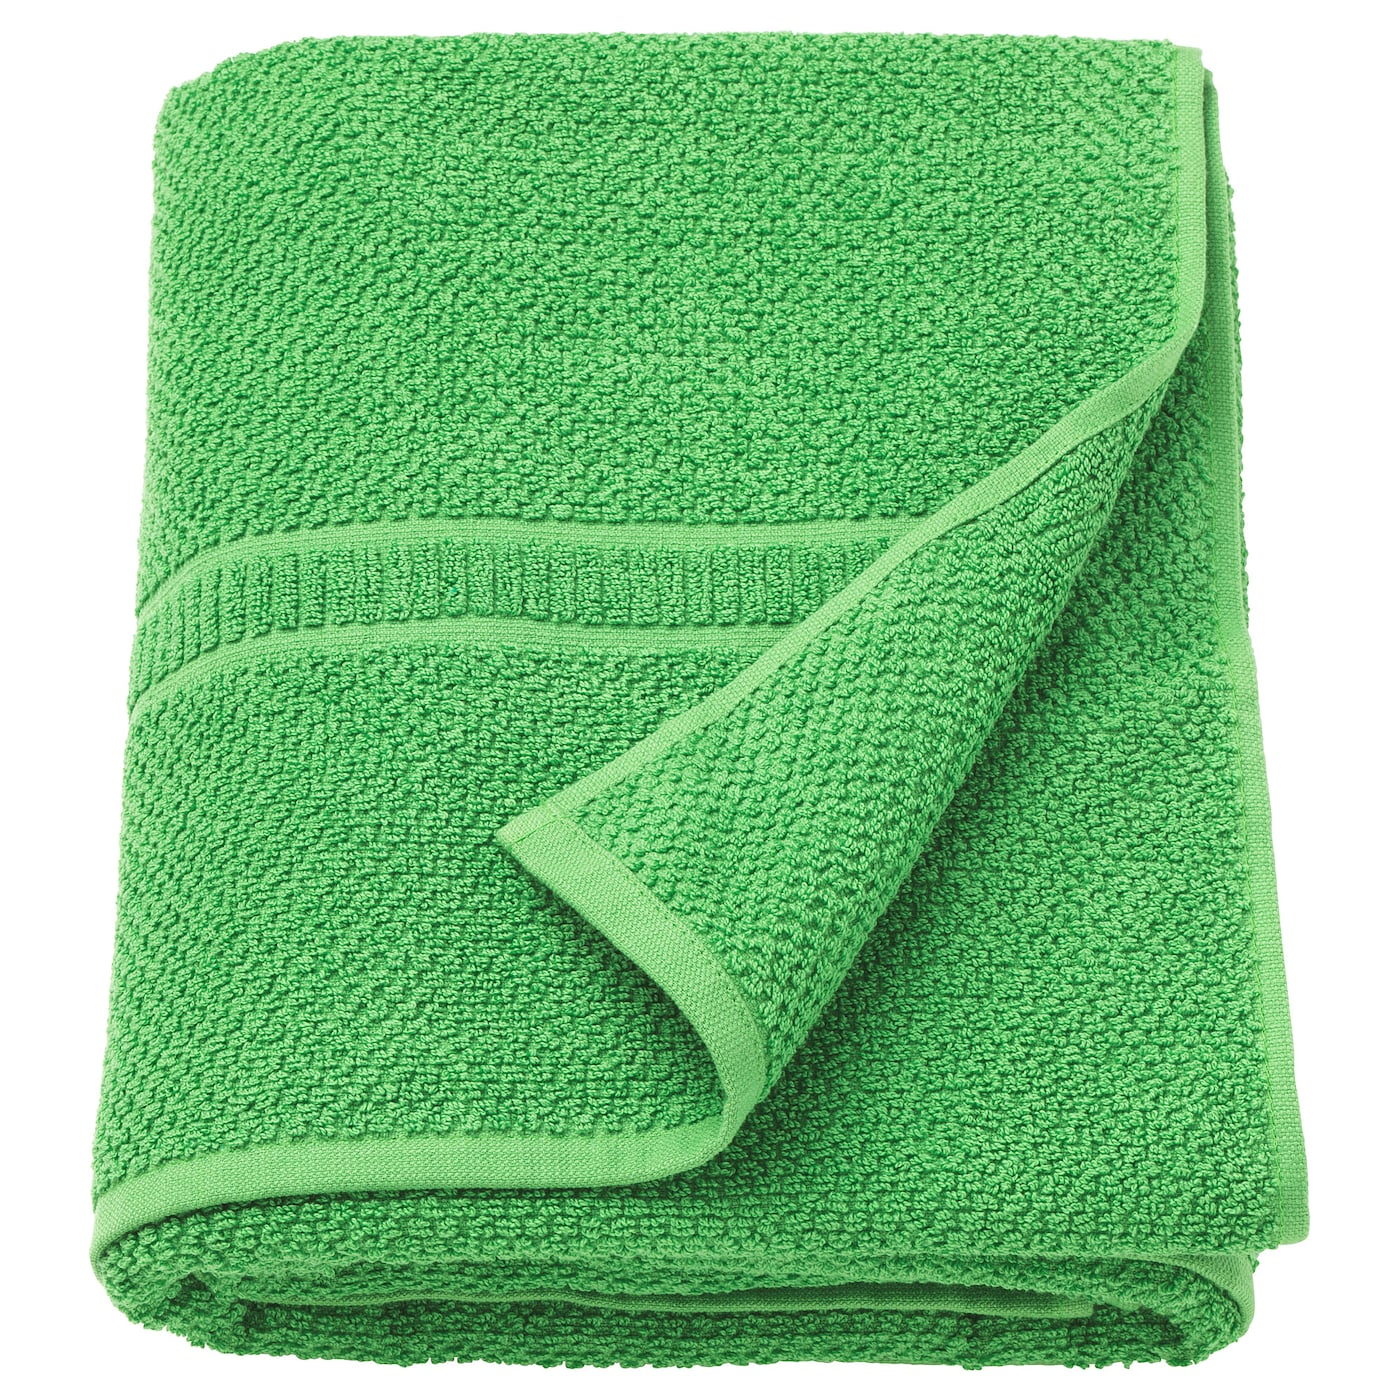 IKEA FRÄJEN bath sheet The long, fine fibres of combed cotton create a soft and durable towel.